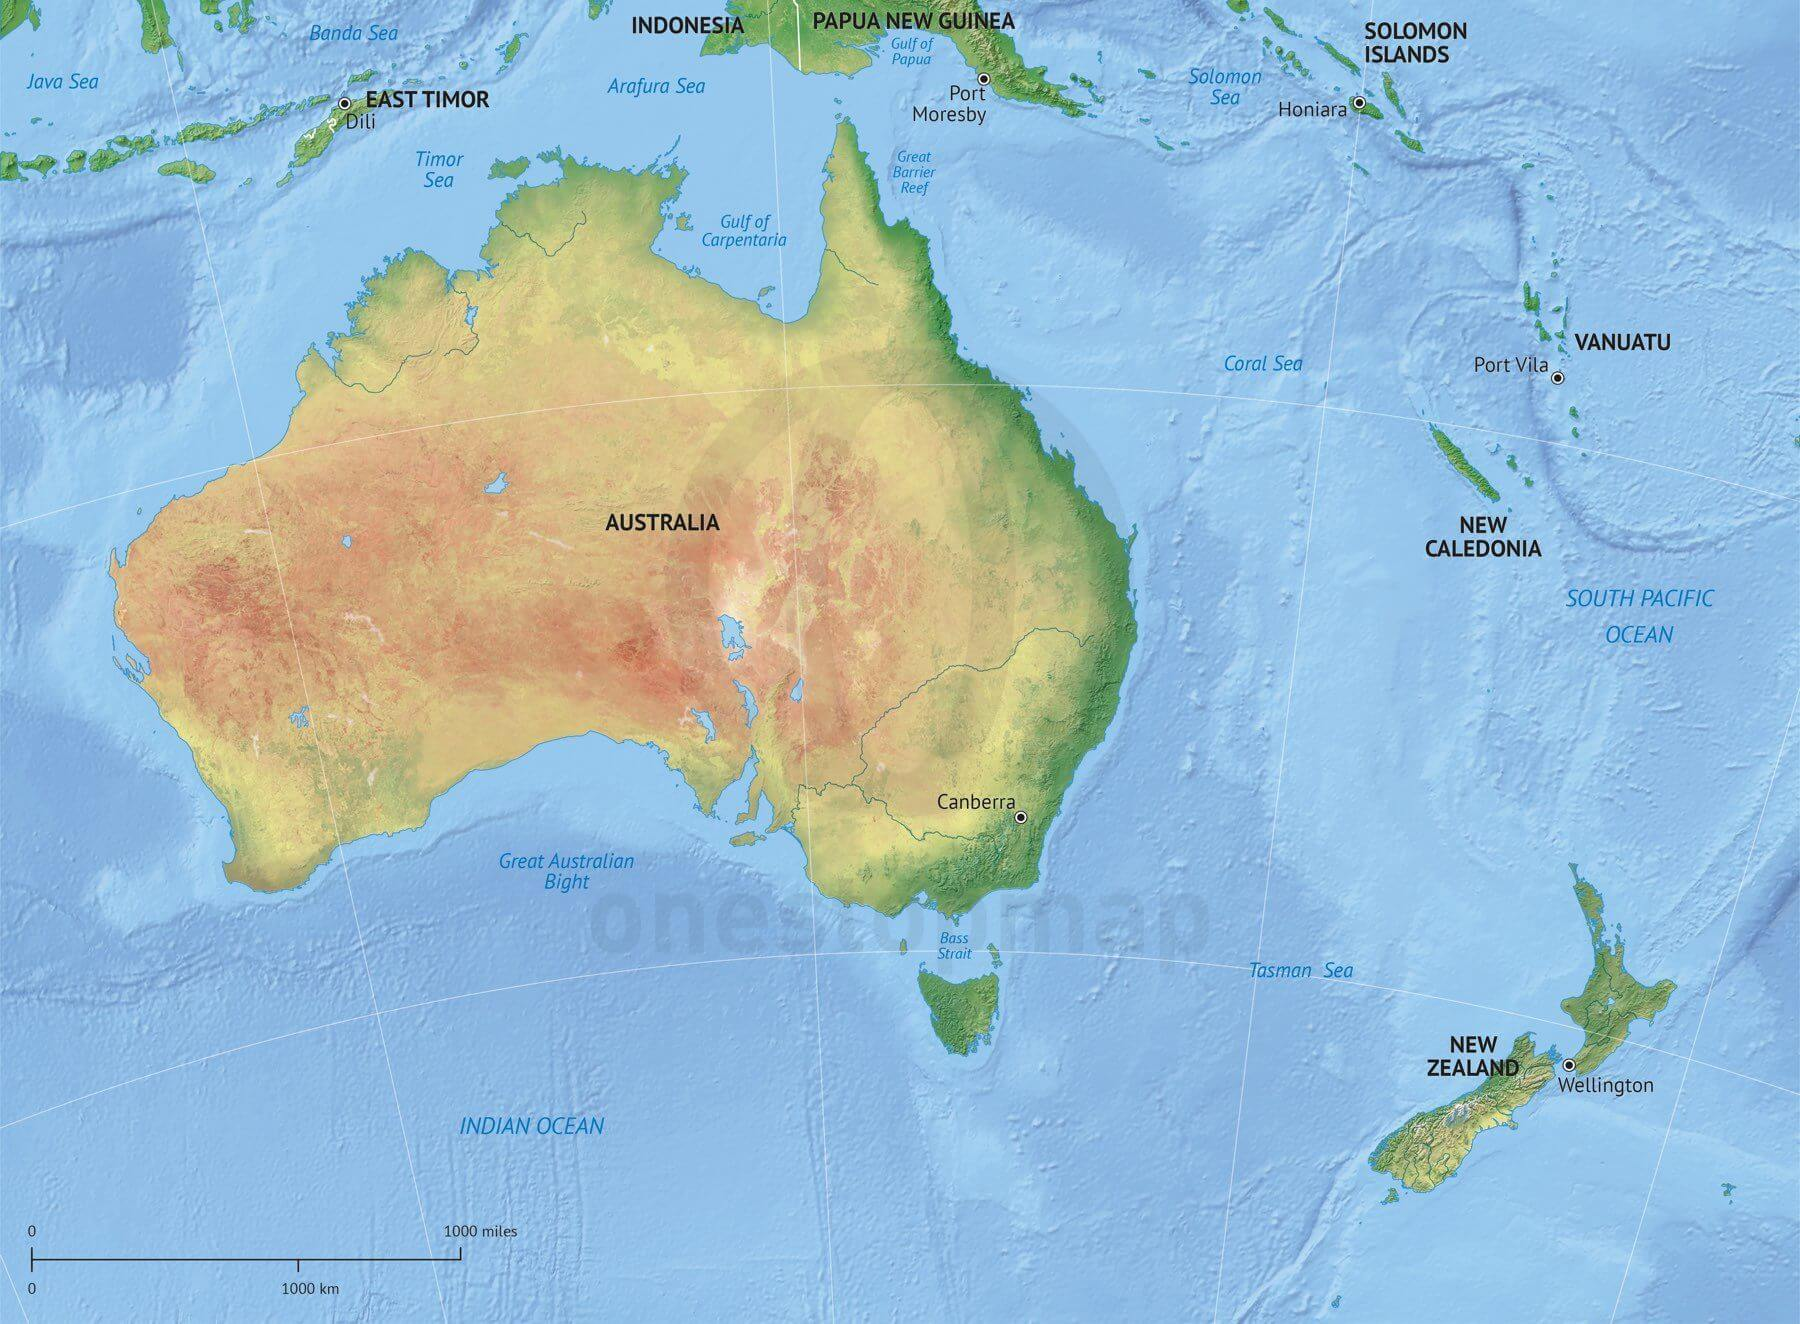 New Zealand Australia Map.Map Of Australia New Zealand Political With Shaded Relief